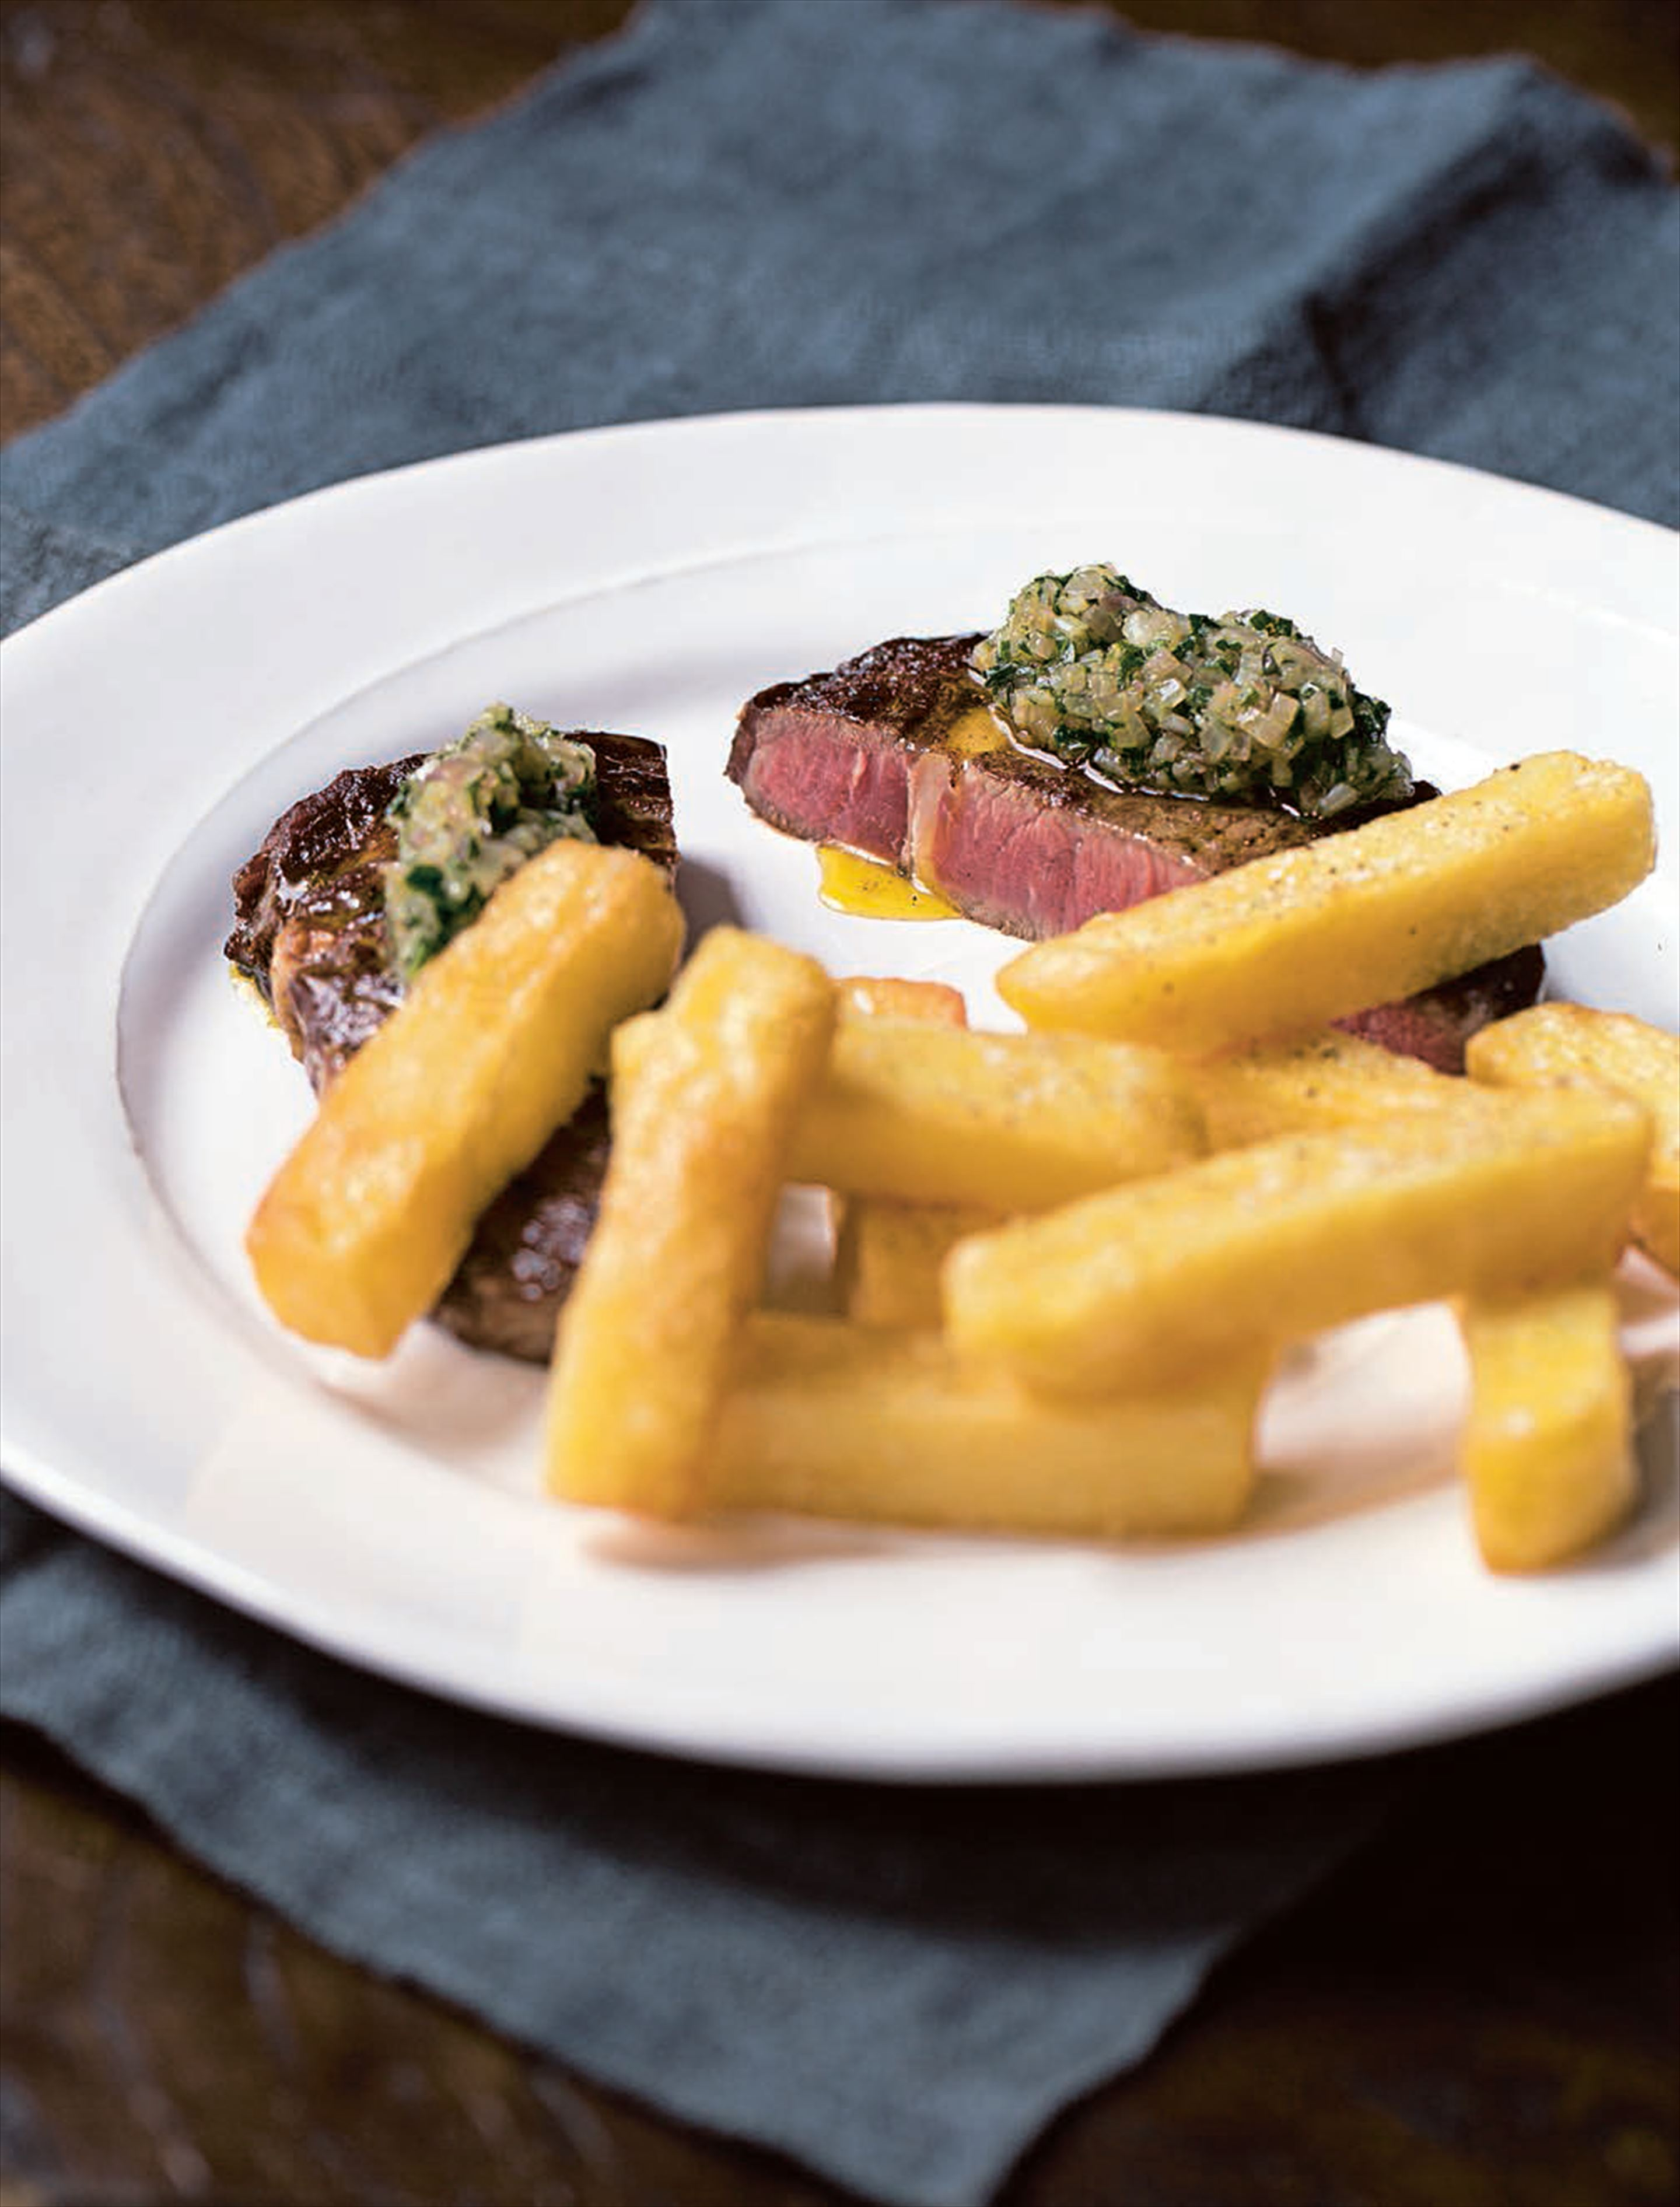 Chargrilled rib-eye steaks with chimichurri sauce